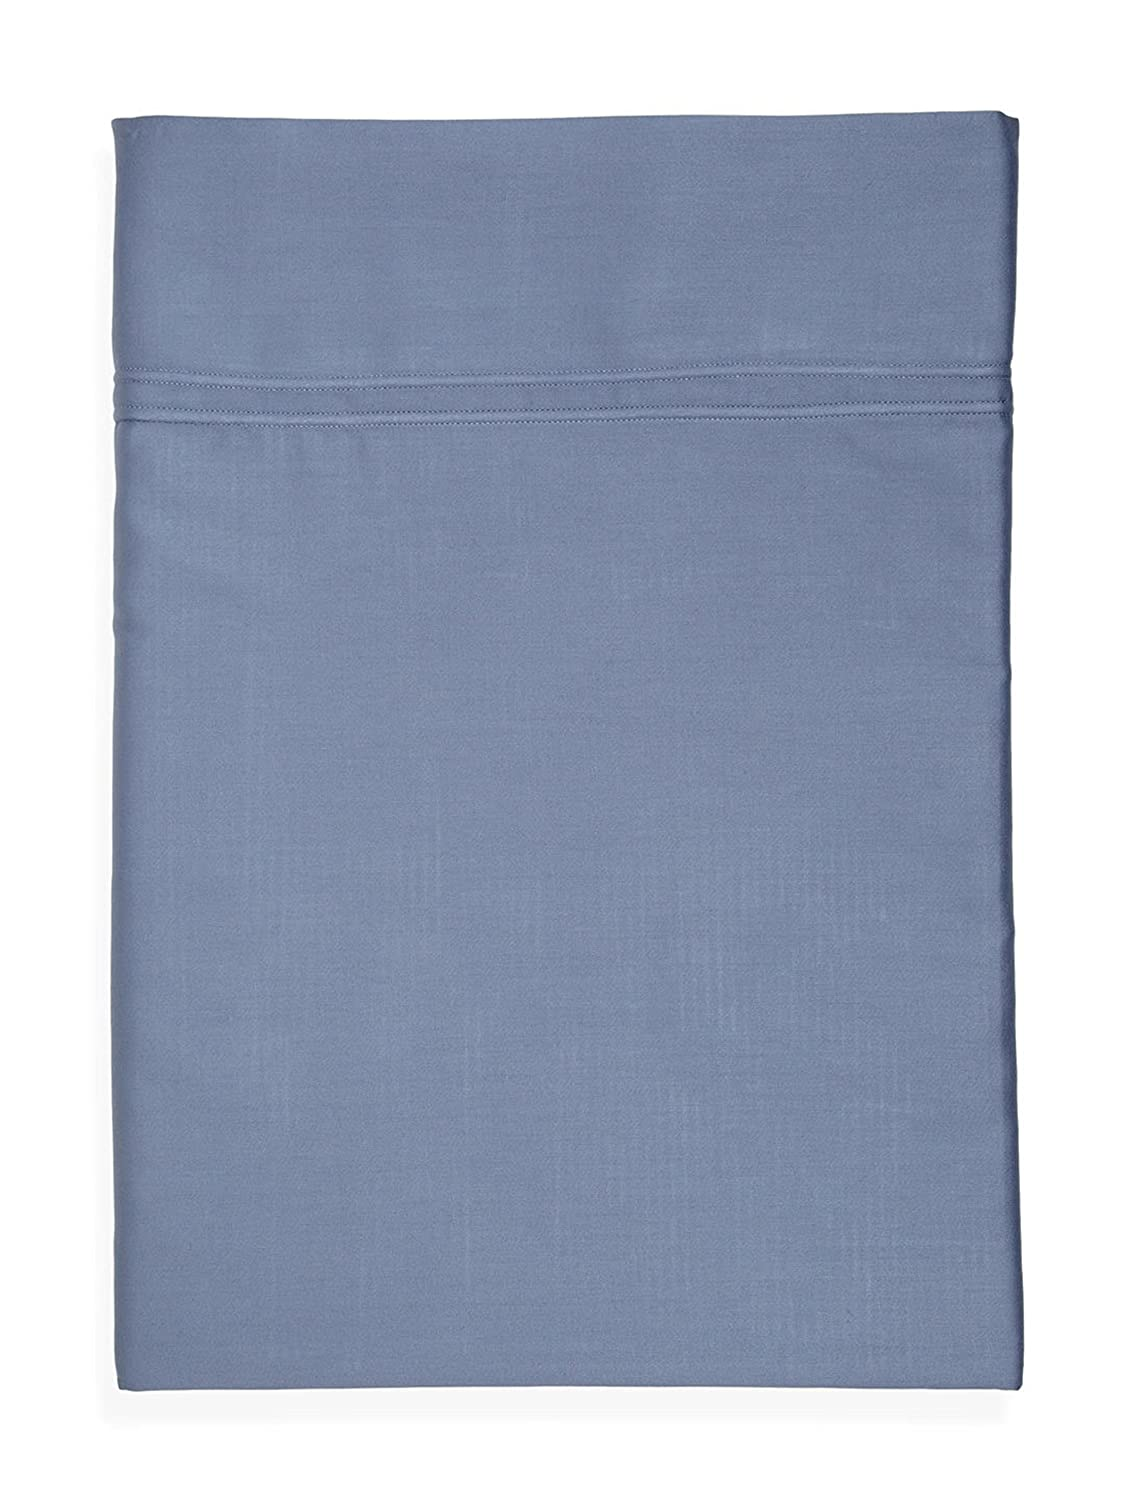 Yves Delorme Triomphe Blue Queen Flat Sheet Baltic Solid 100% Egyptian Cotton